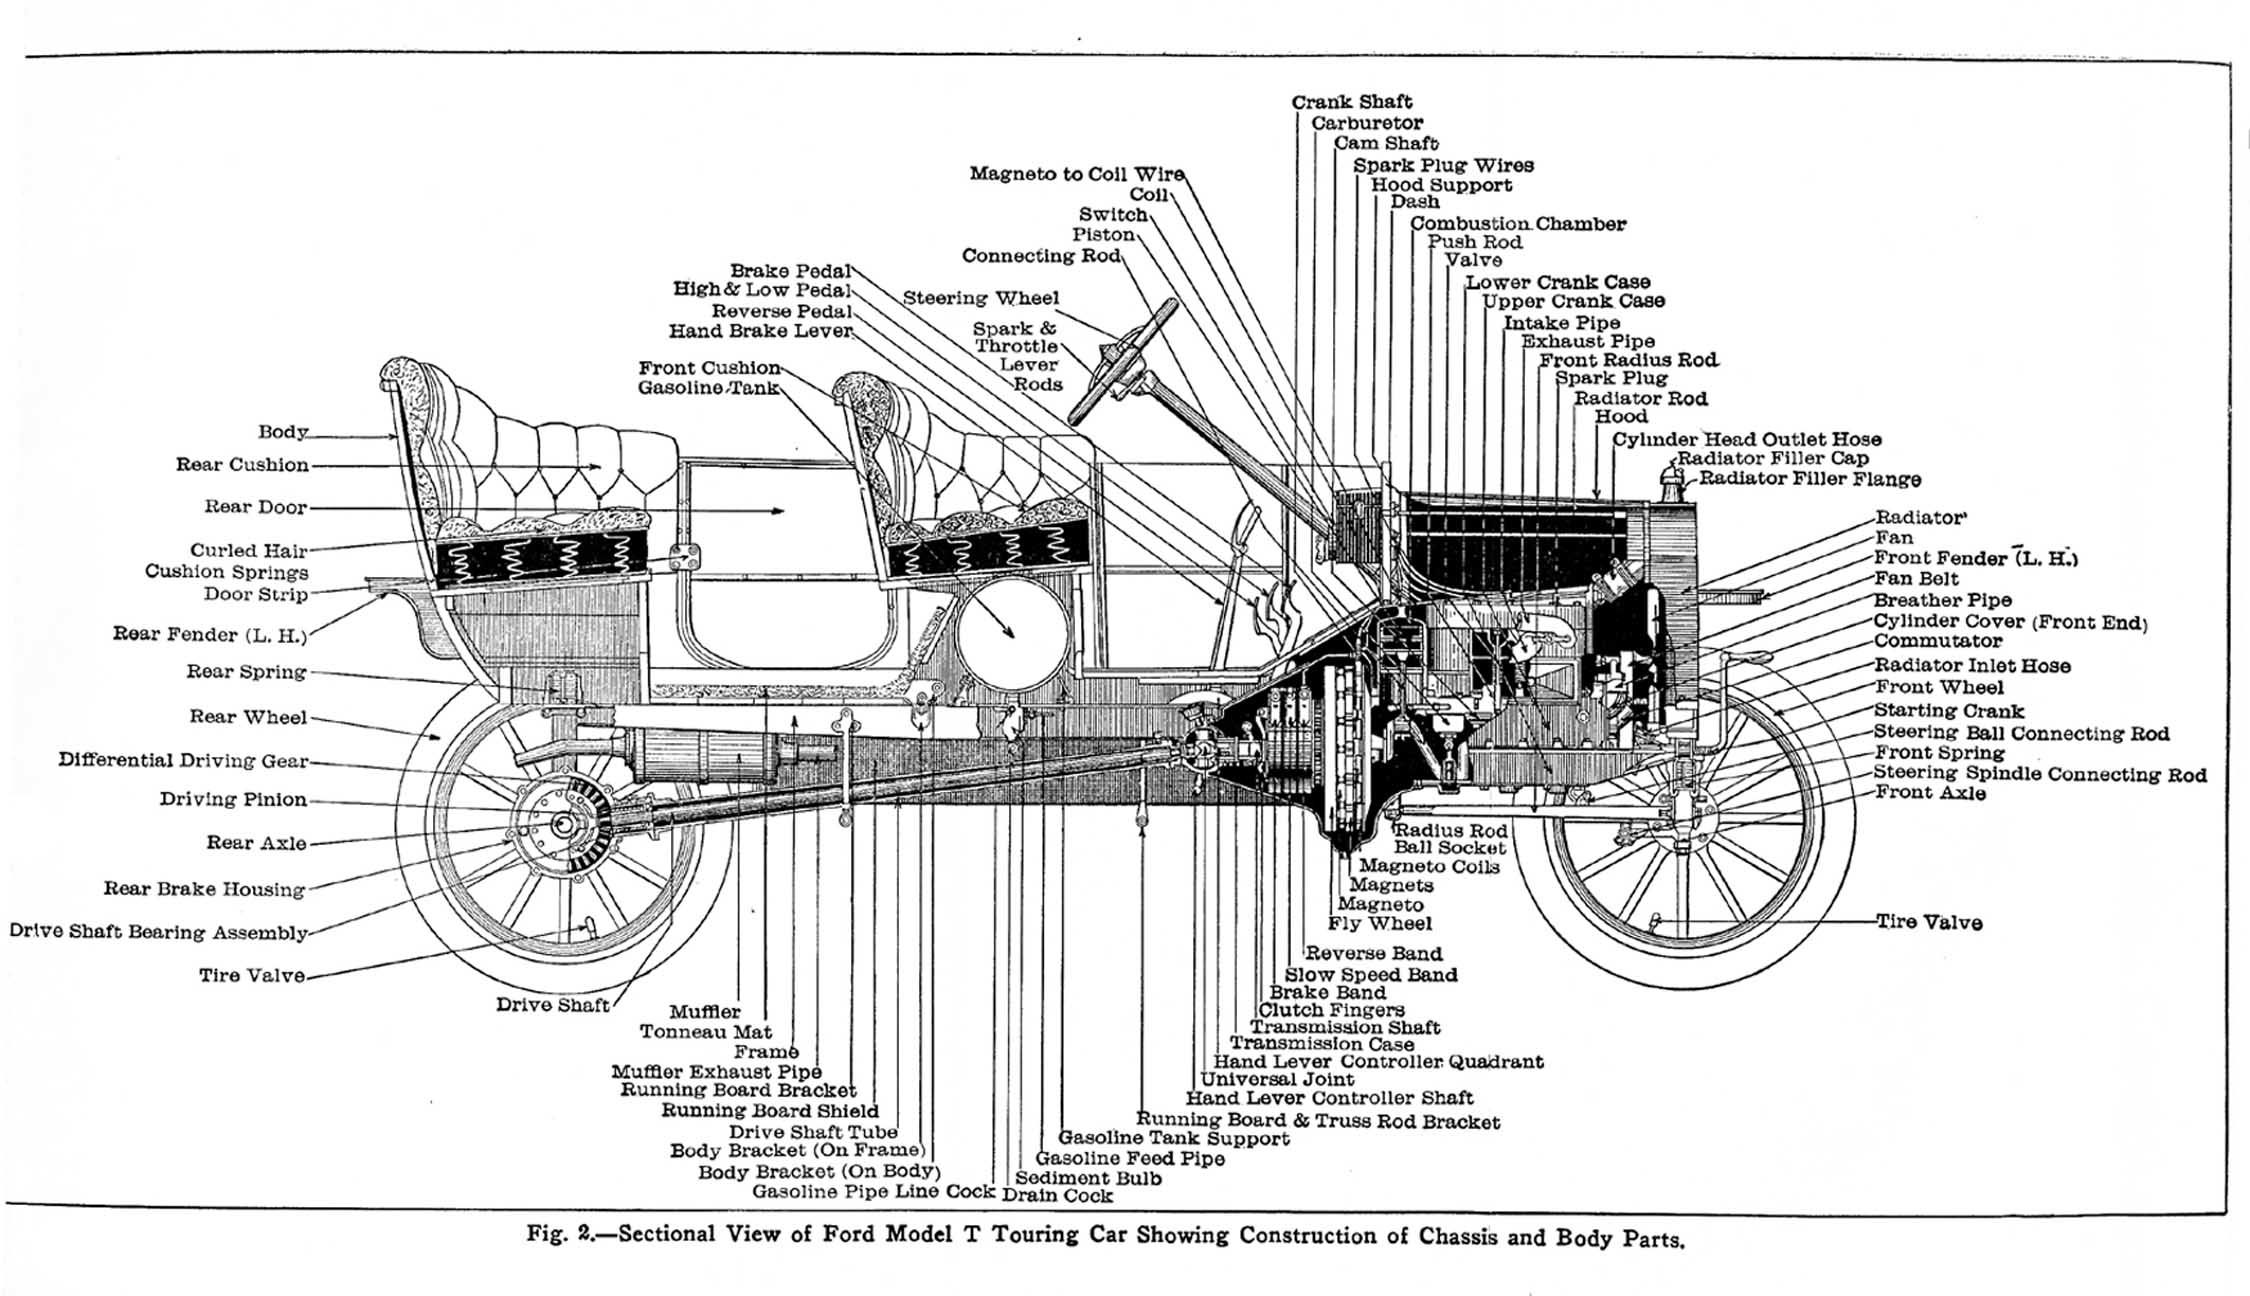 66e79df5b0b267da13cd144858073935 model t engine diagram 1915 model t ford repair maintainance